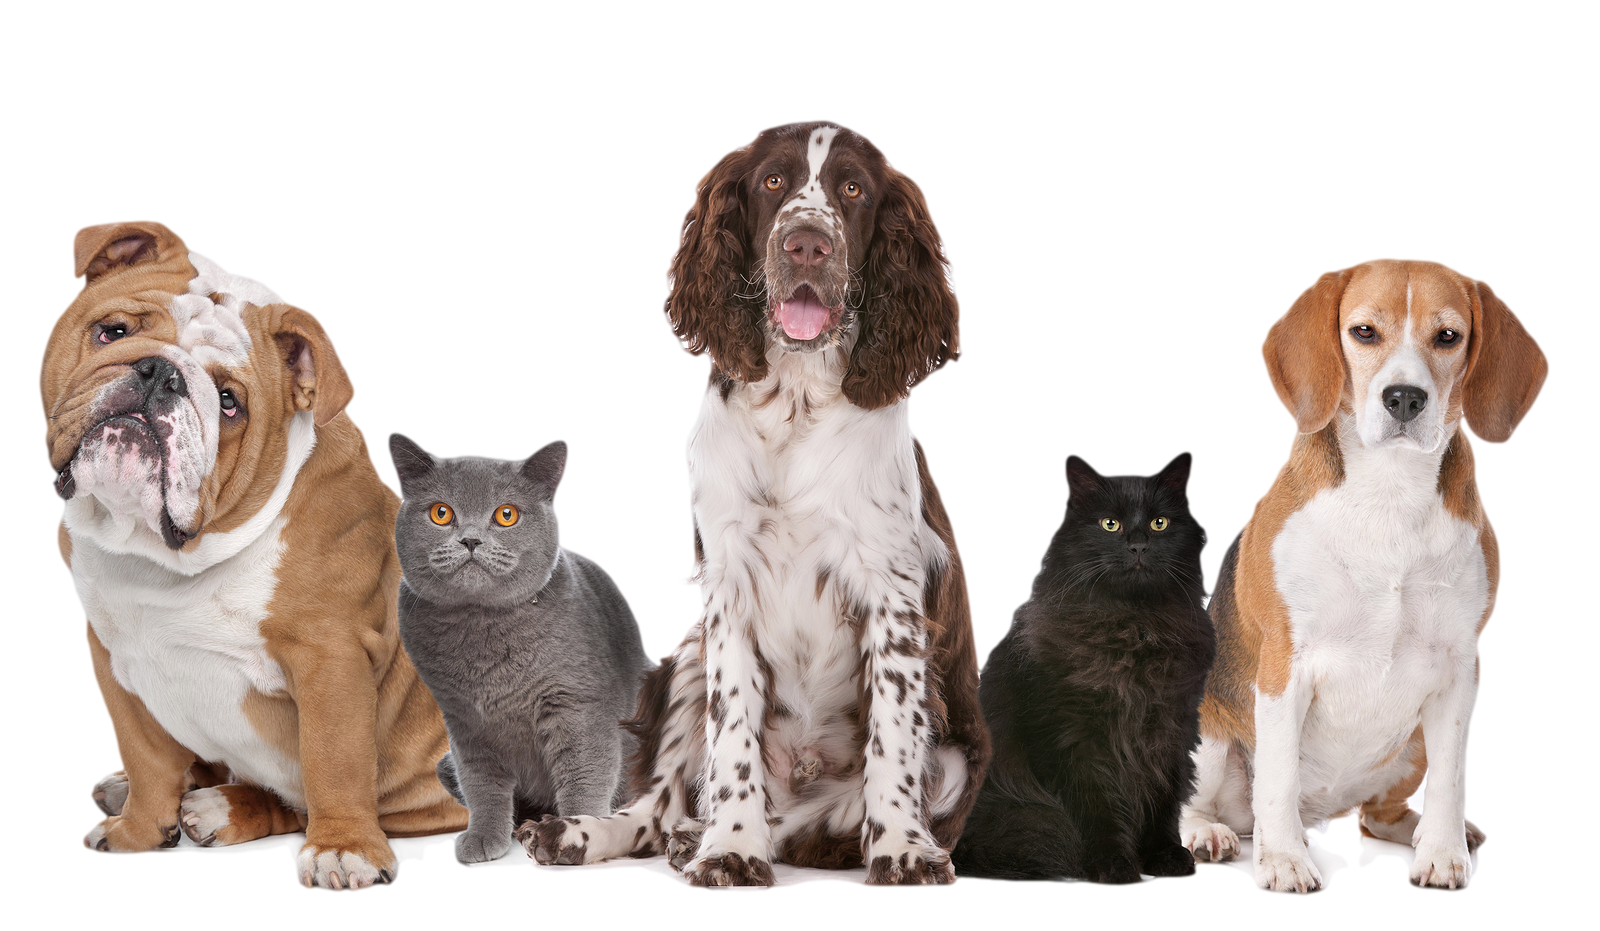 PNG HD Dogs And Cats Transparent HD Dogs And Cats.PNG Images.